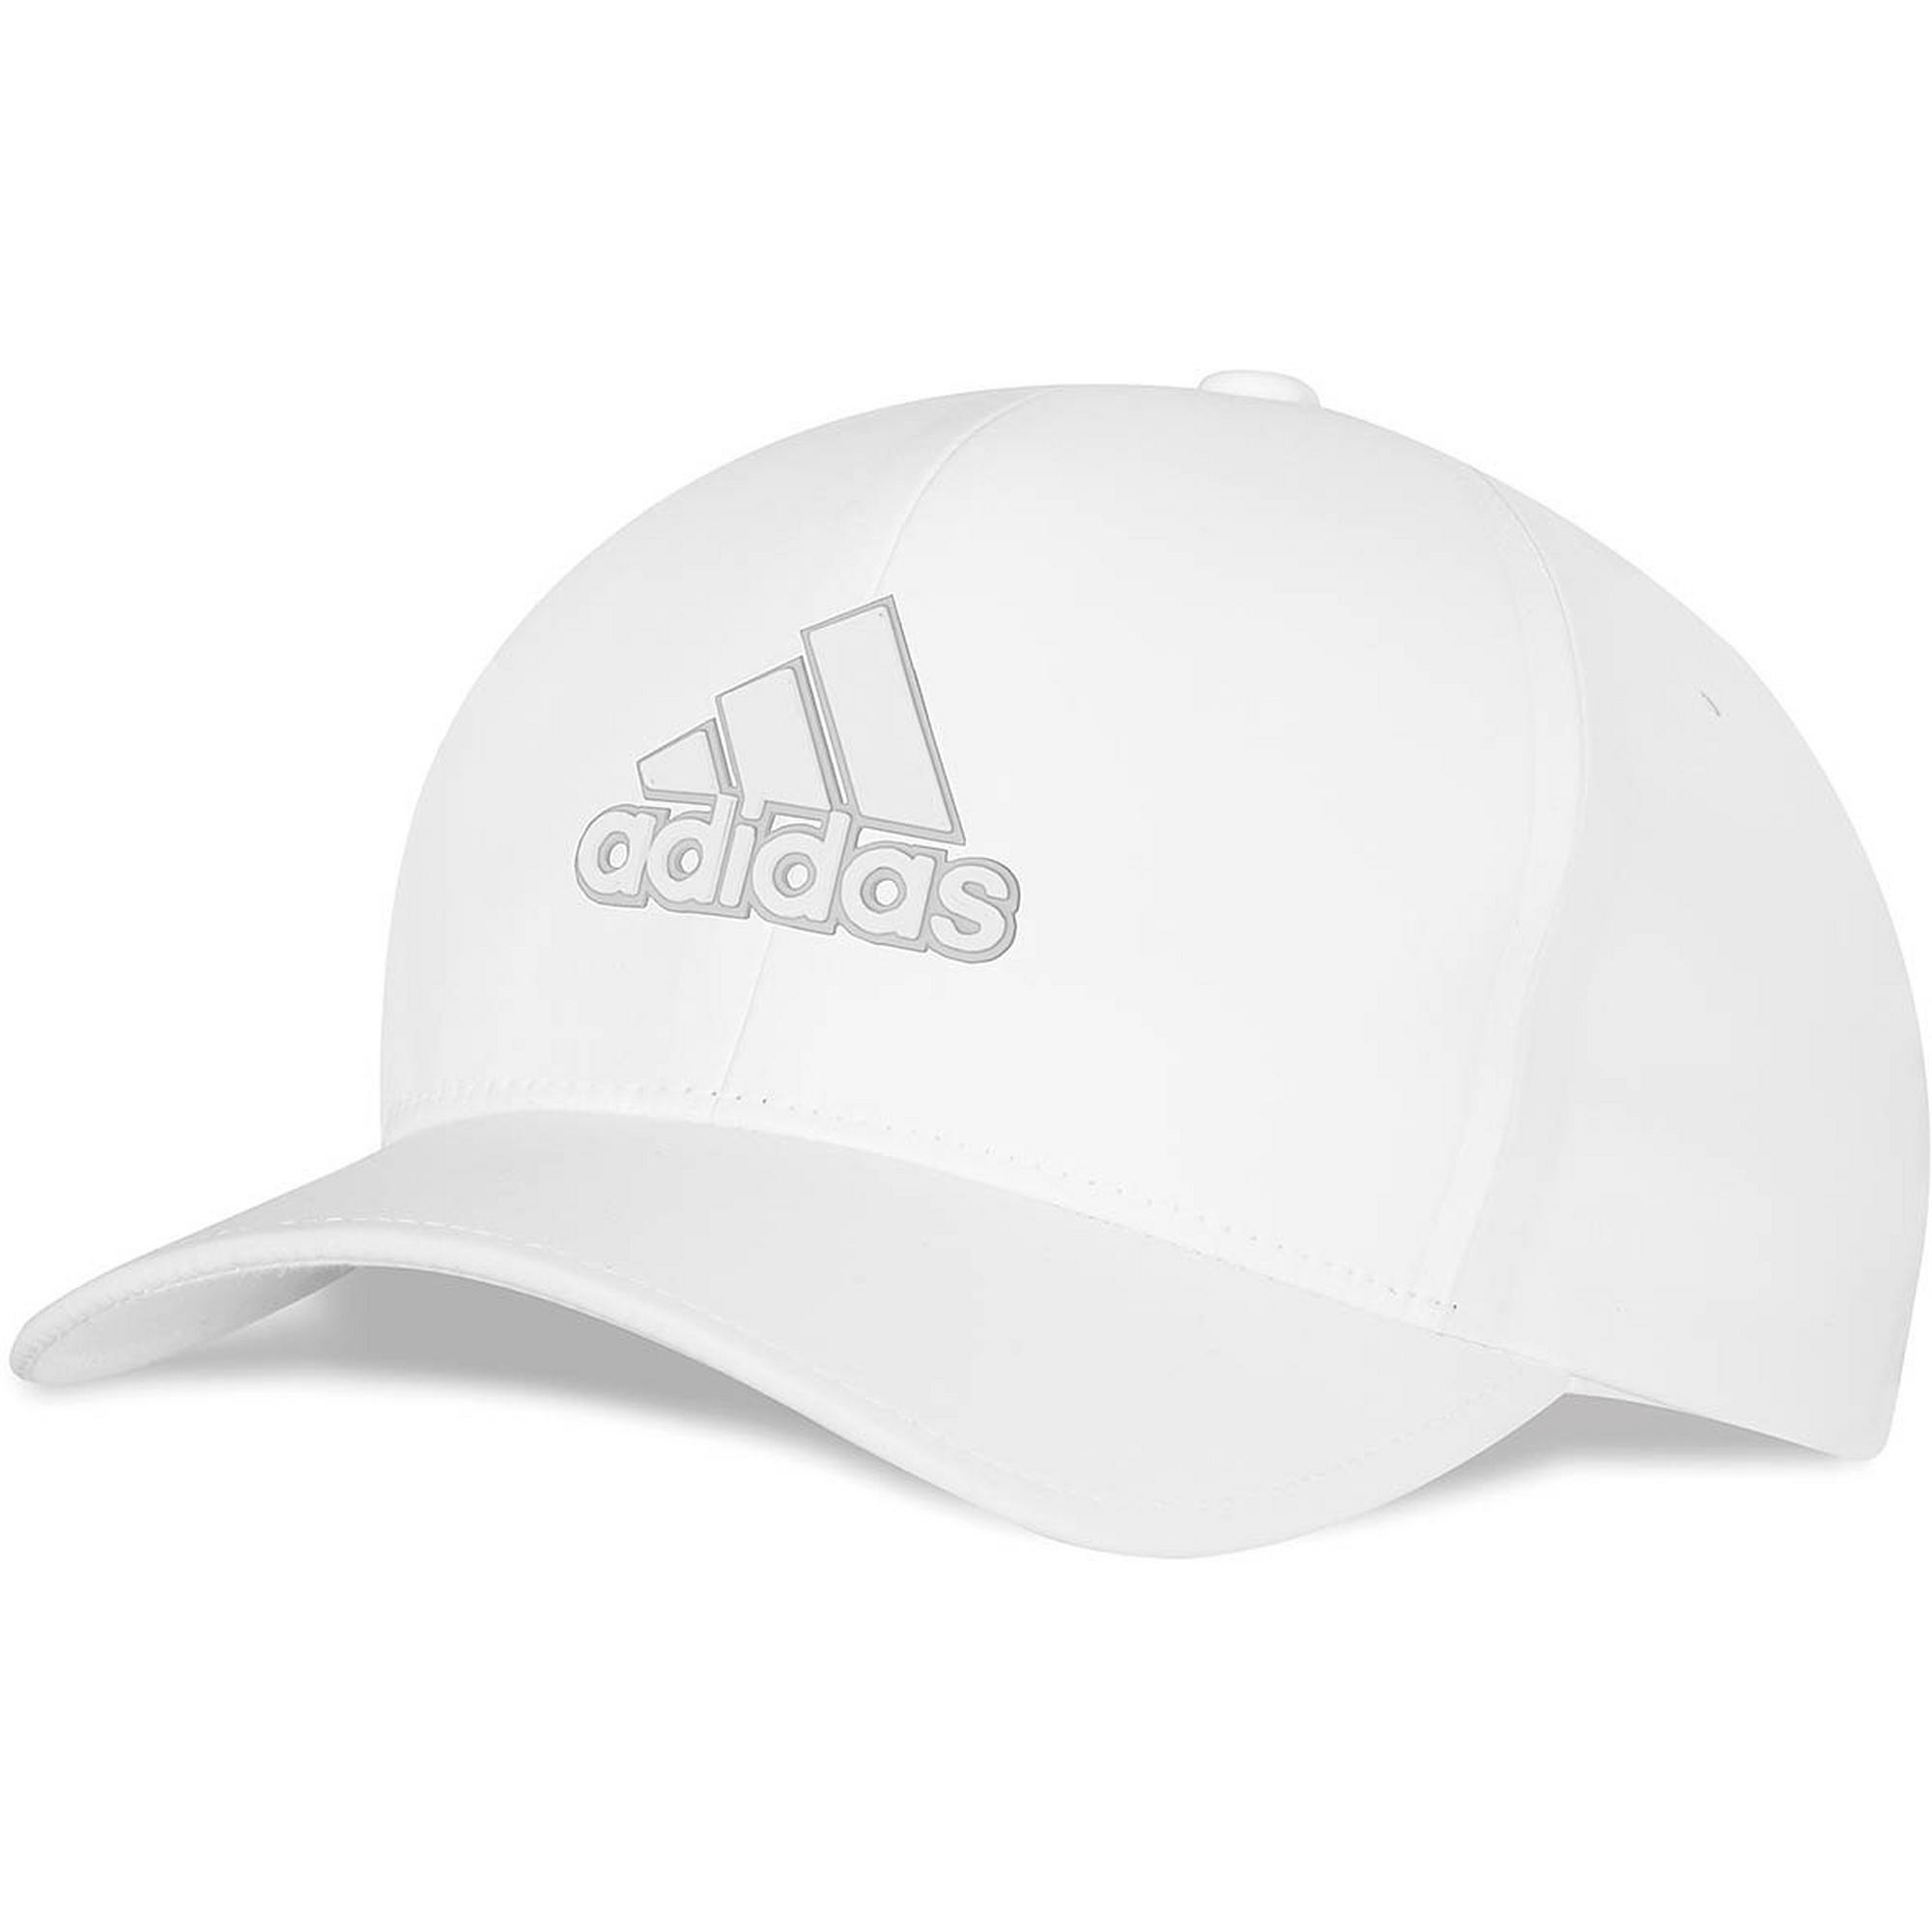 be9c7602 Men's Tour Delta Textured Cap | ADIDAS | Golf Town Limited